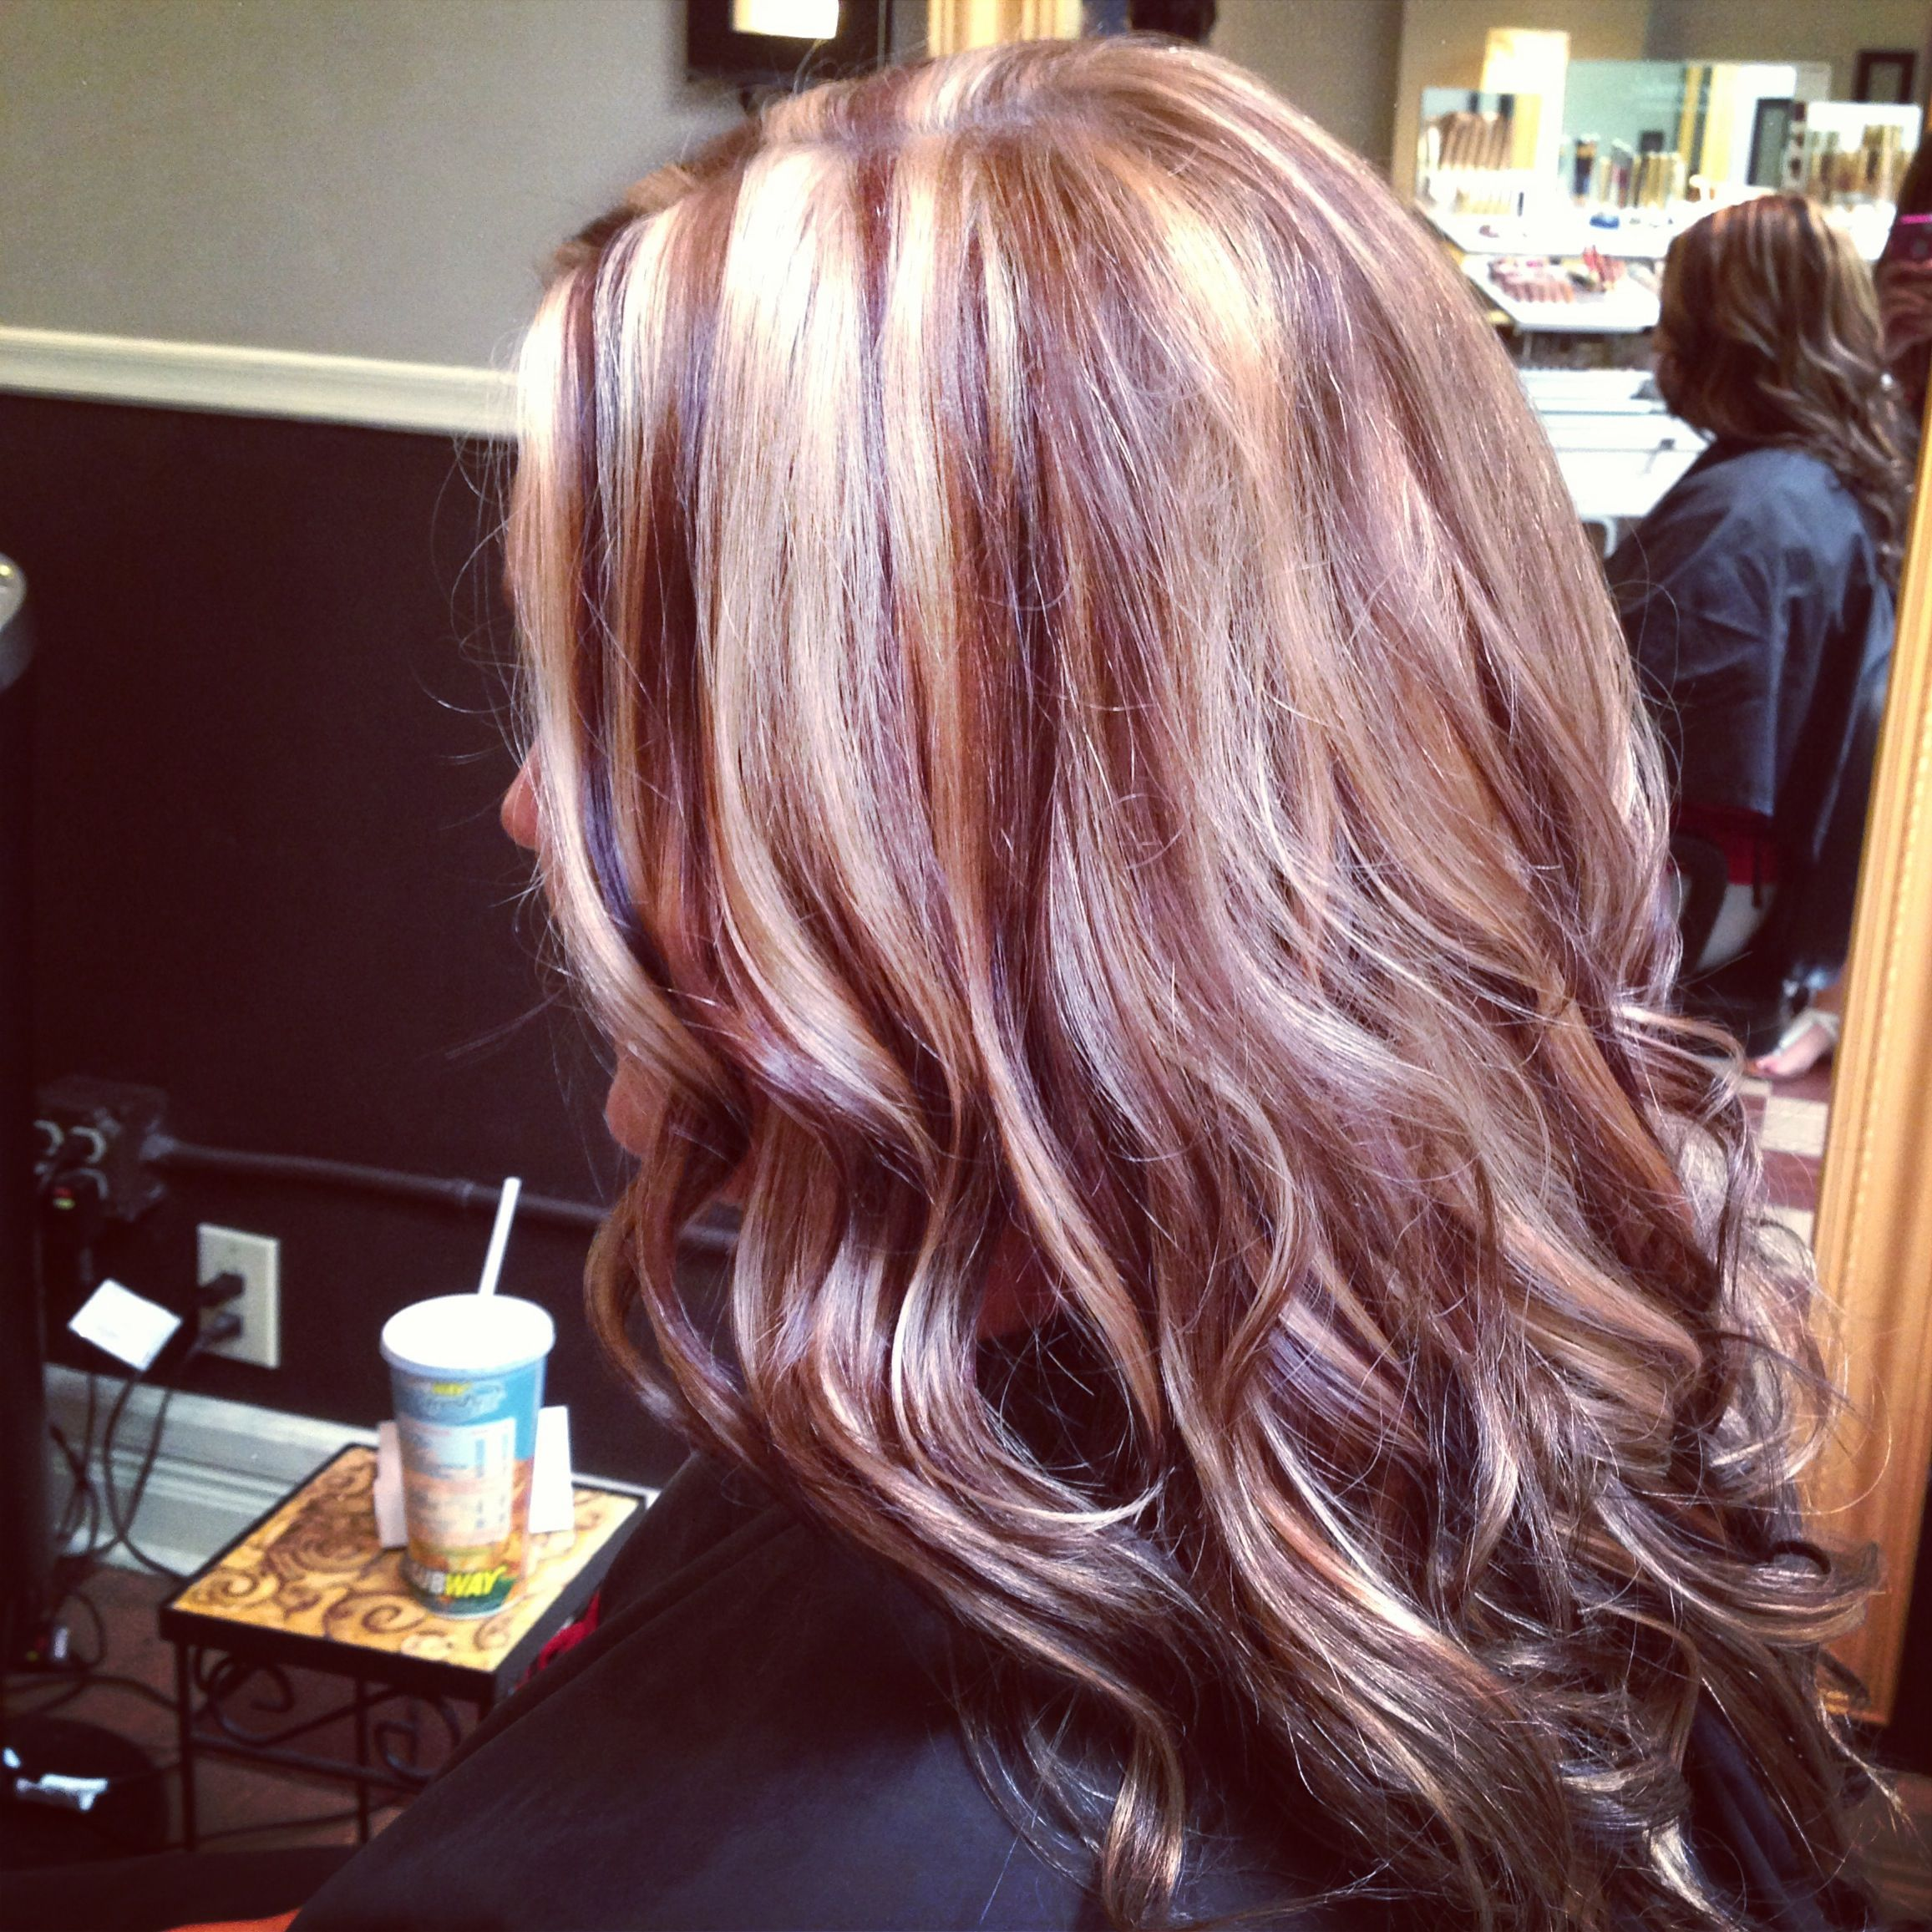 Full of dimension hair. Highlights and lowlights. | My Creations ...